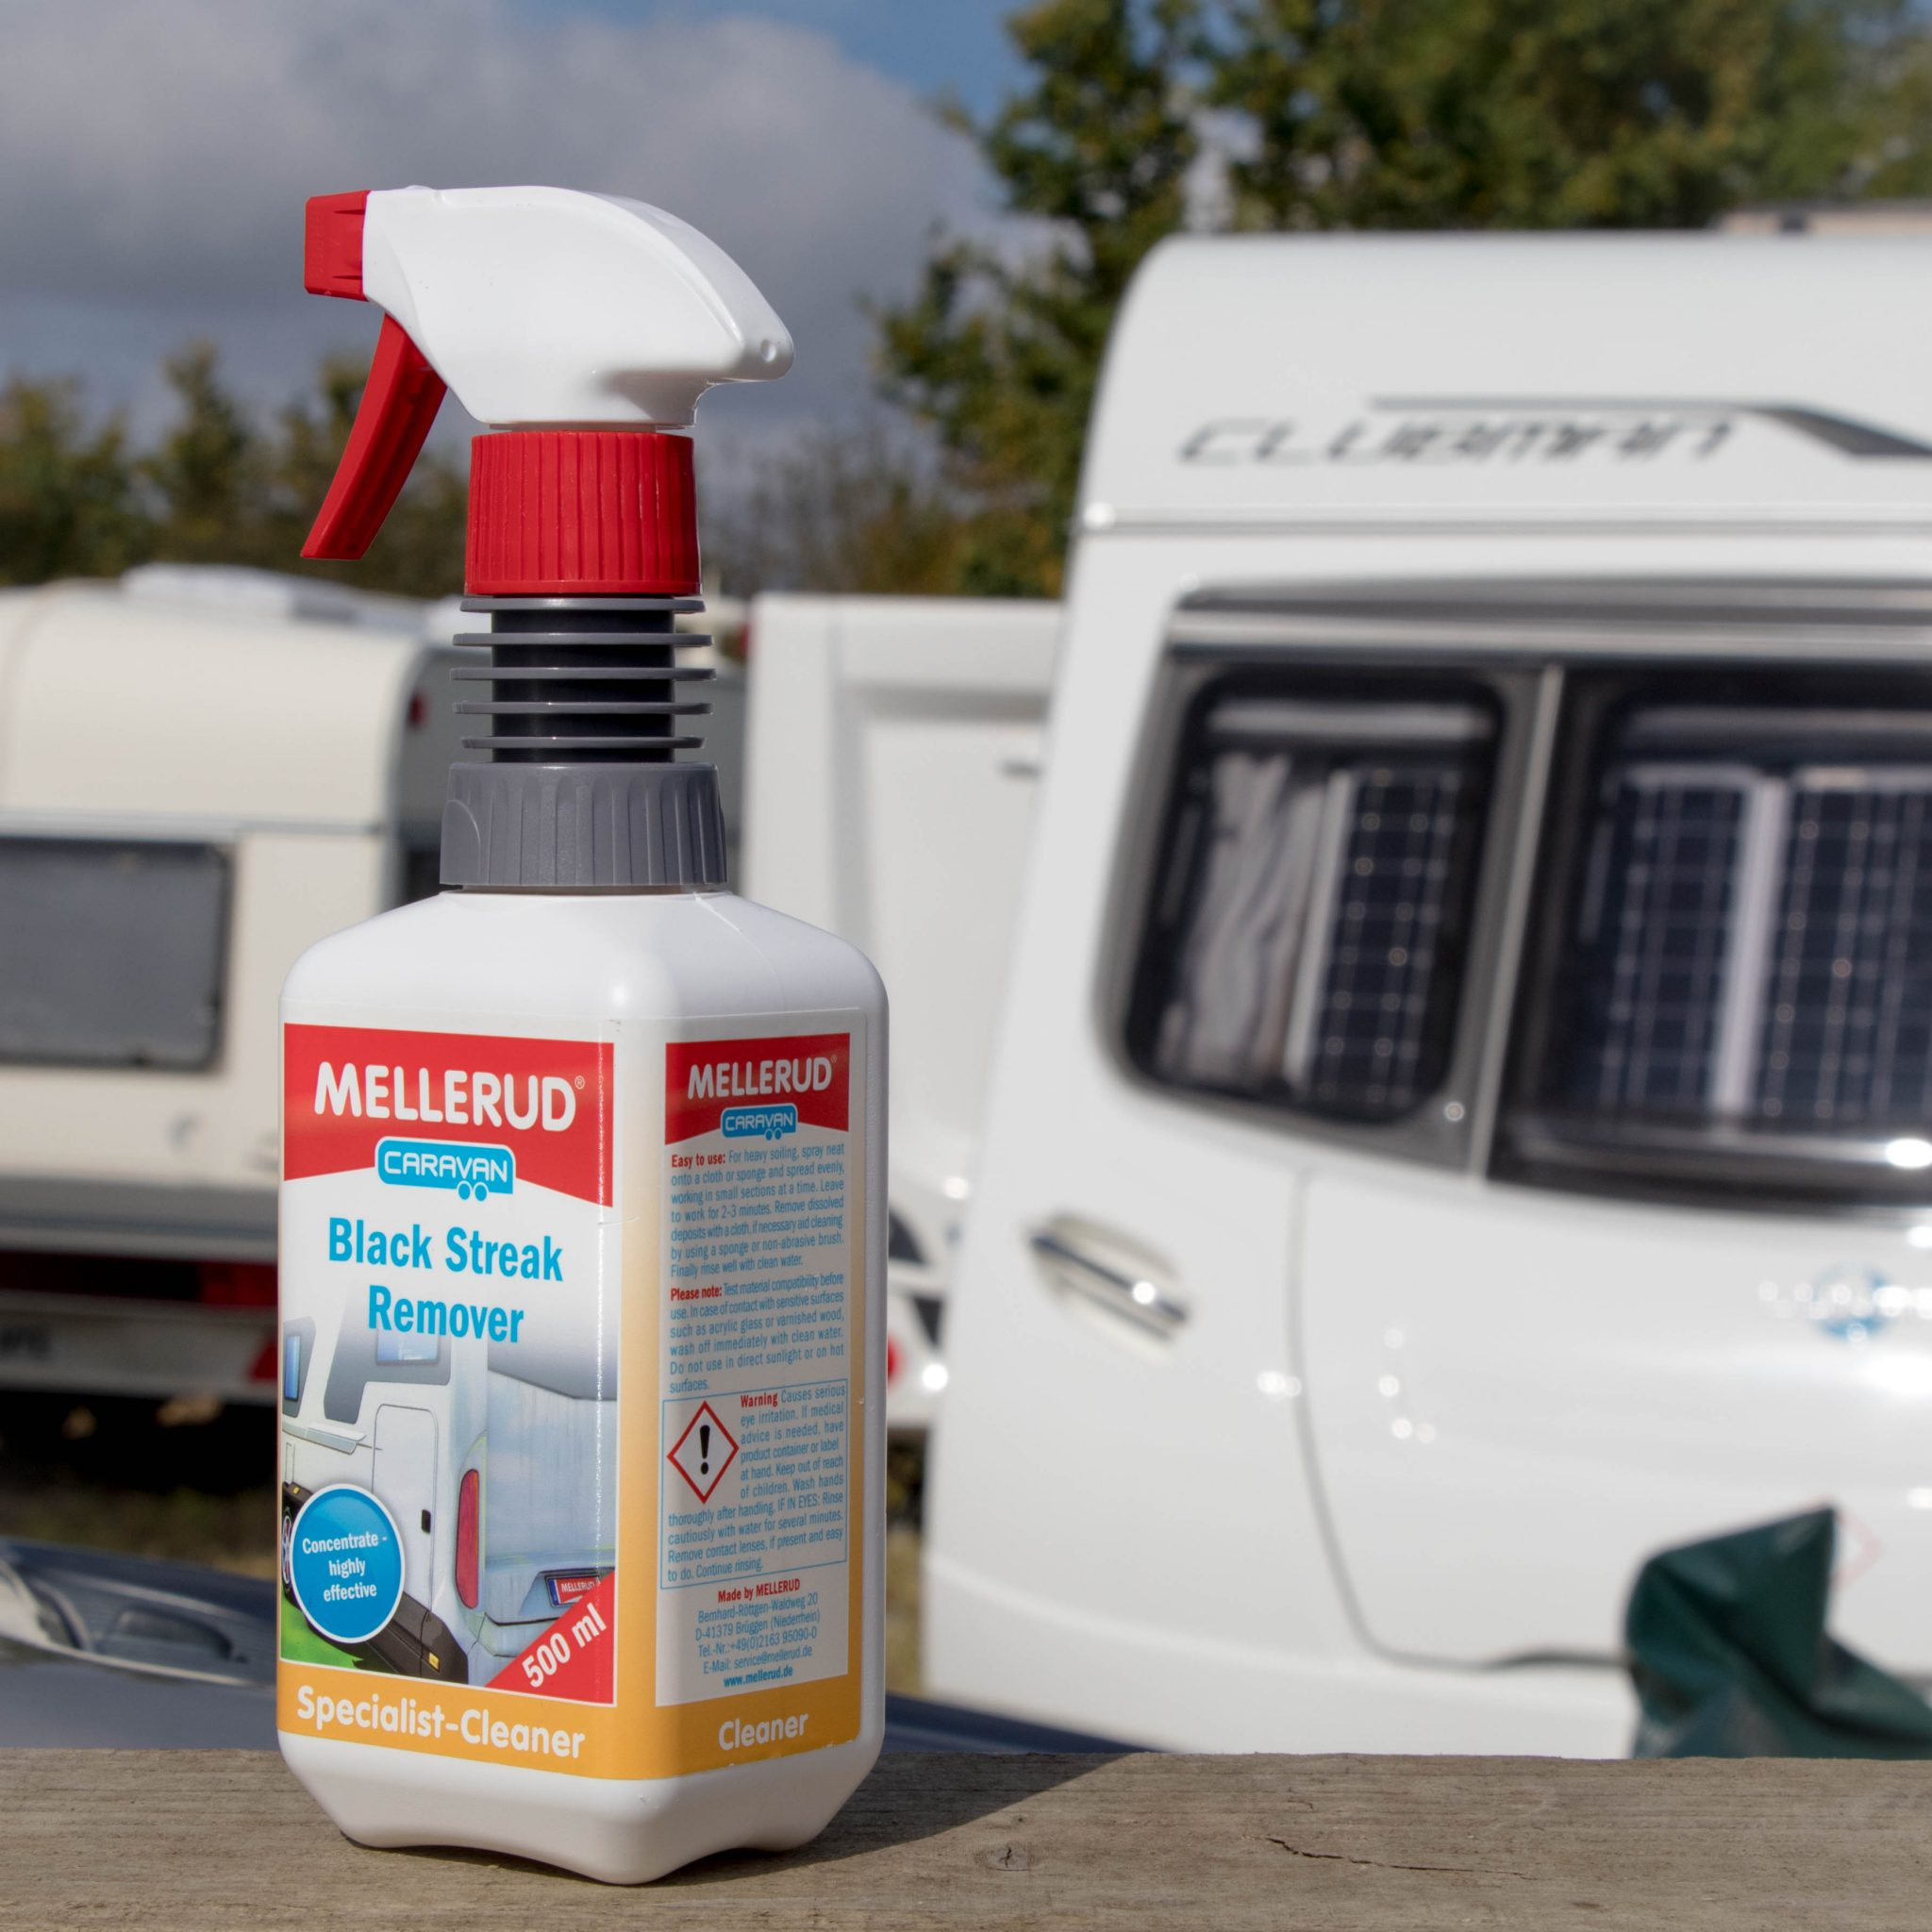 ⭐️ Best caravan hook up units 2019